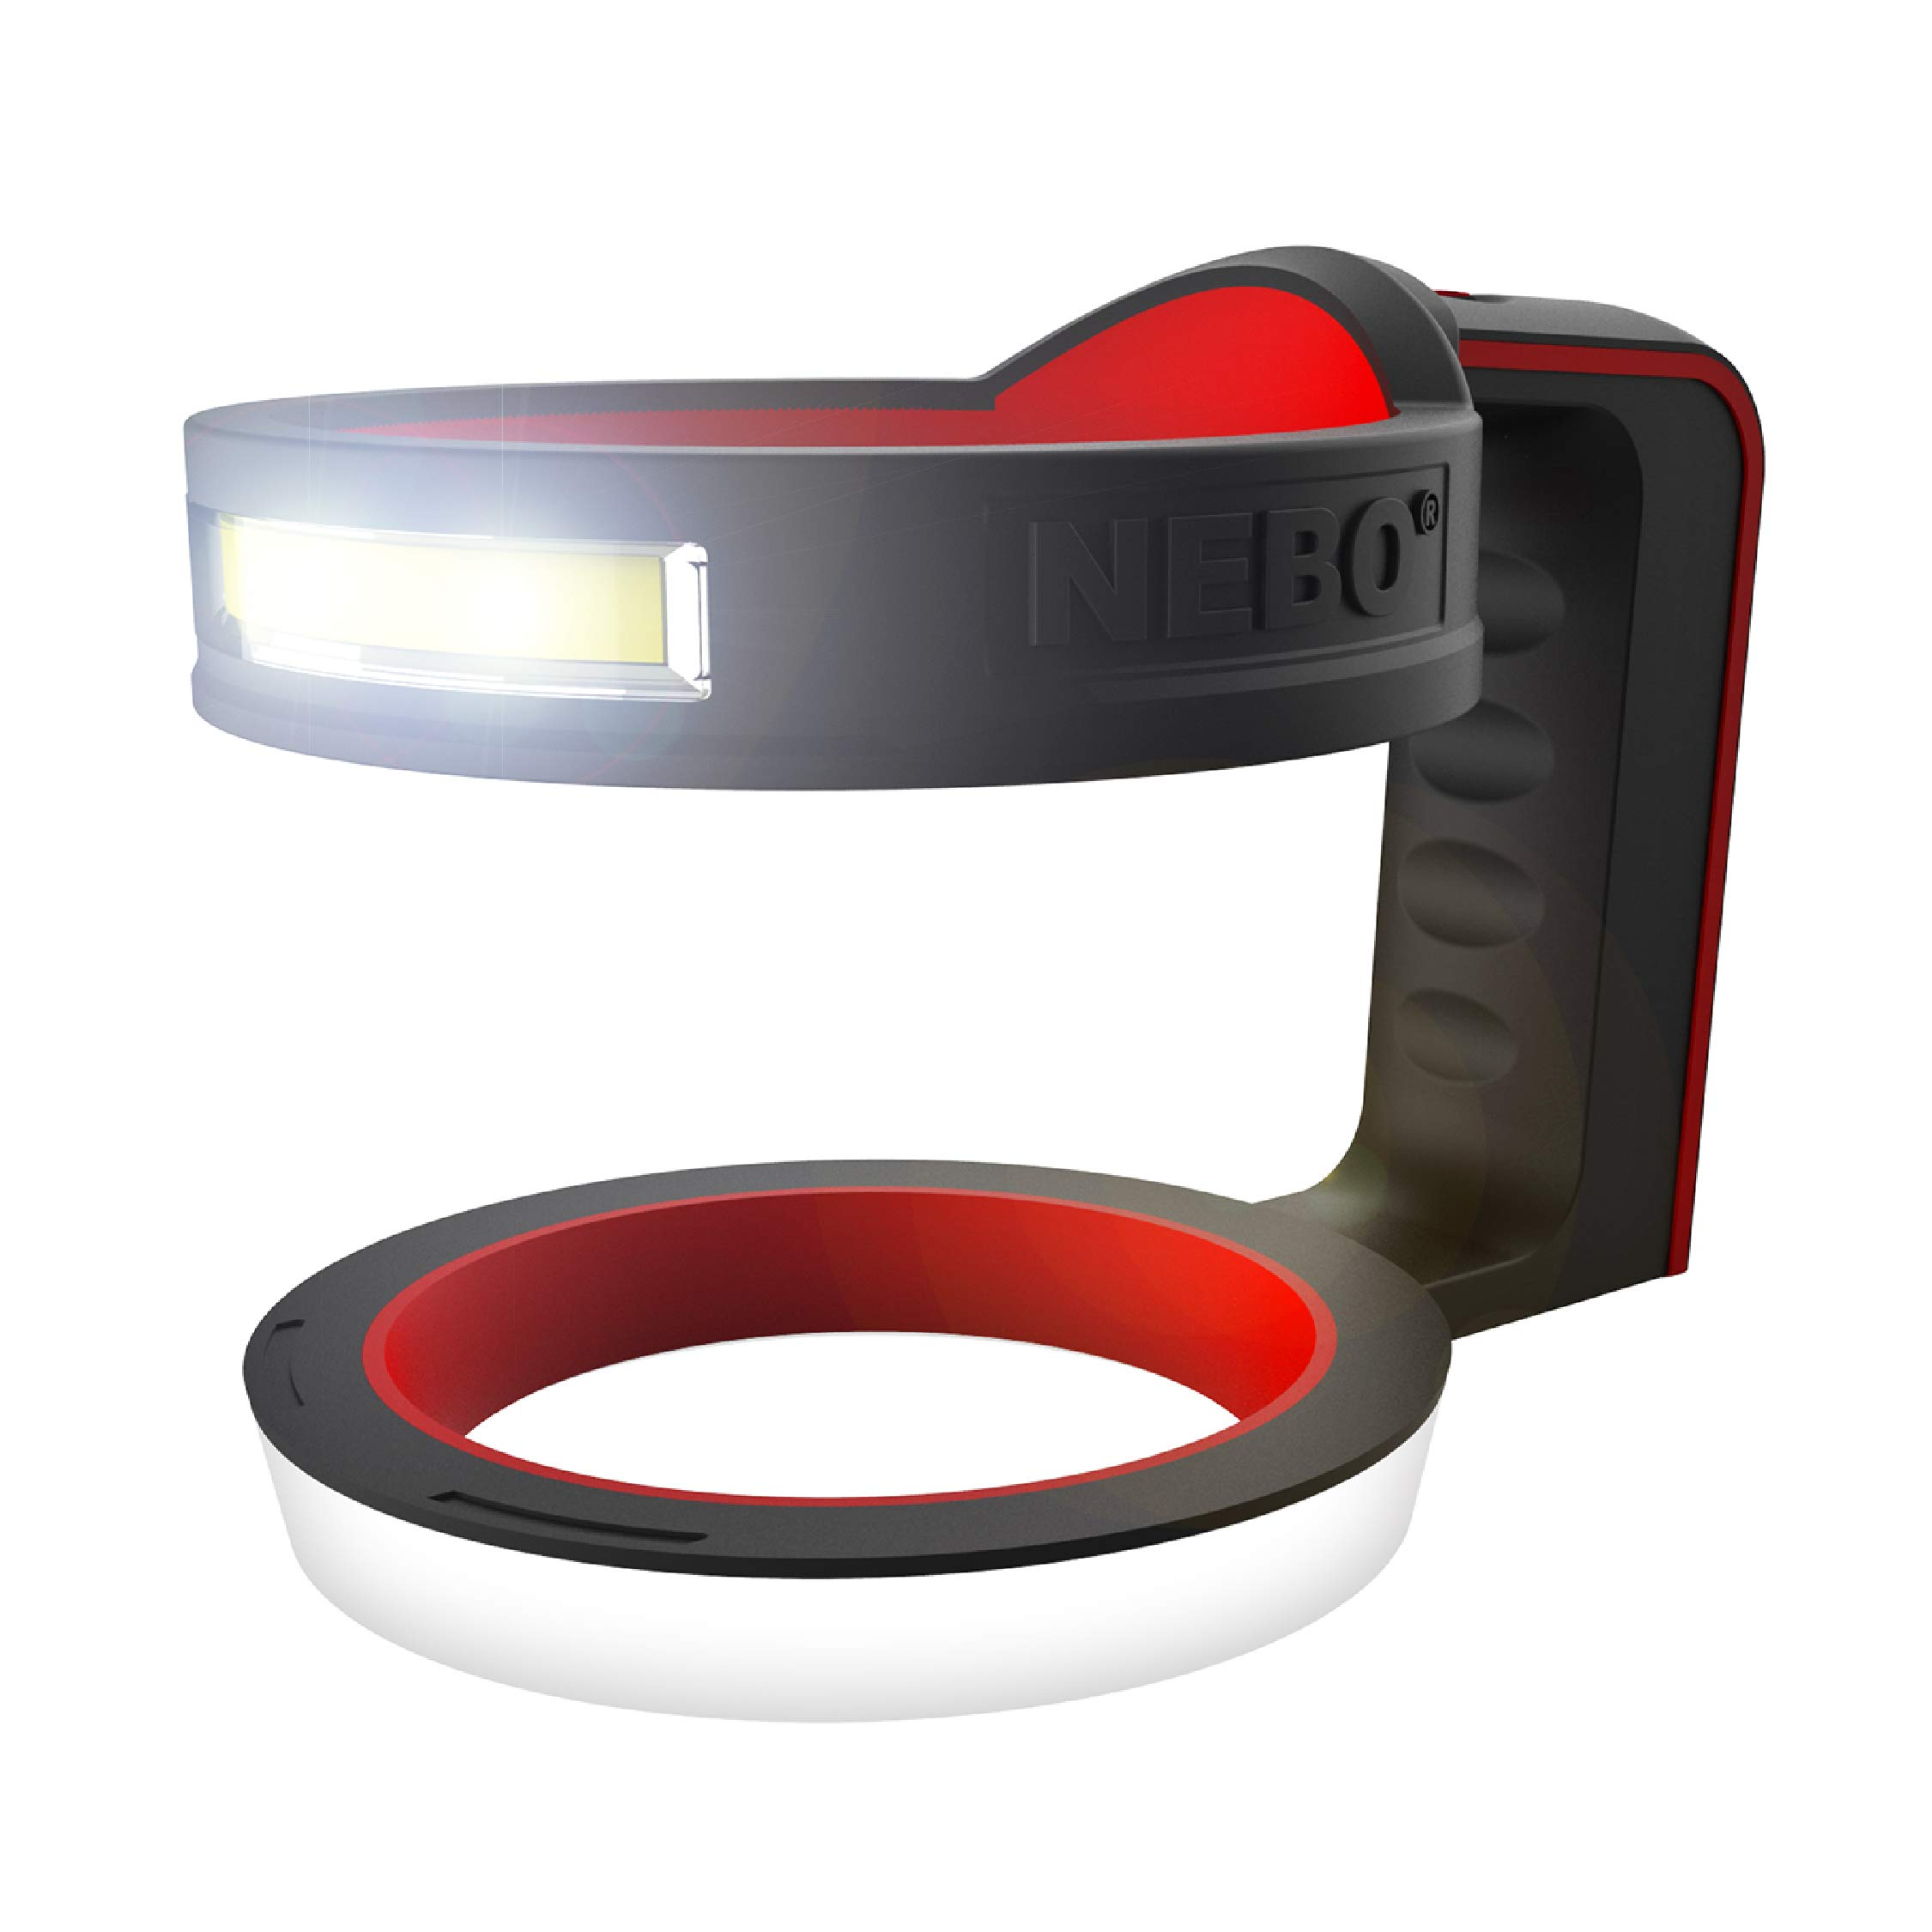 NEBO Glow Yetti Tumbler Holder: Will fit a 30oz Tumbler or a 20oz Tumbler with The Included Insert, This Cup Handle Doubles Over As A High Lumen Flashlight - 6668 by NEBO